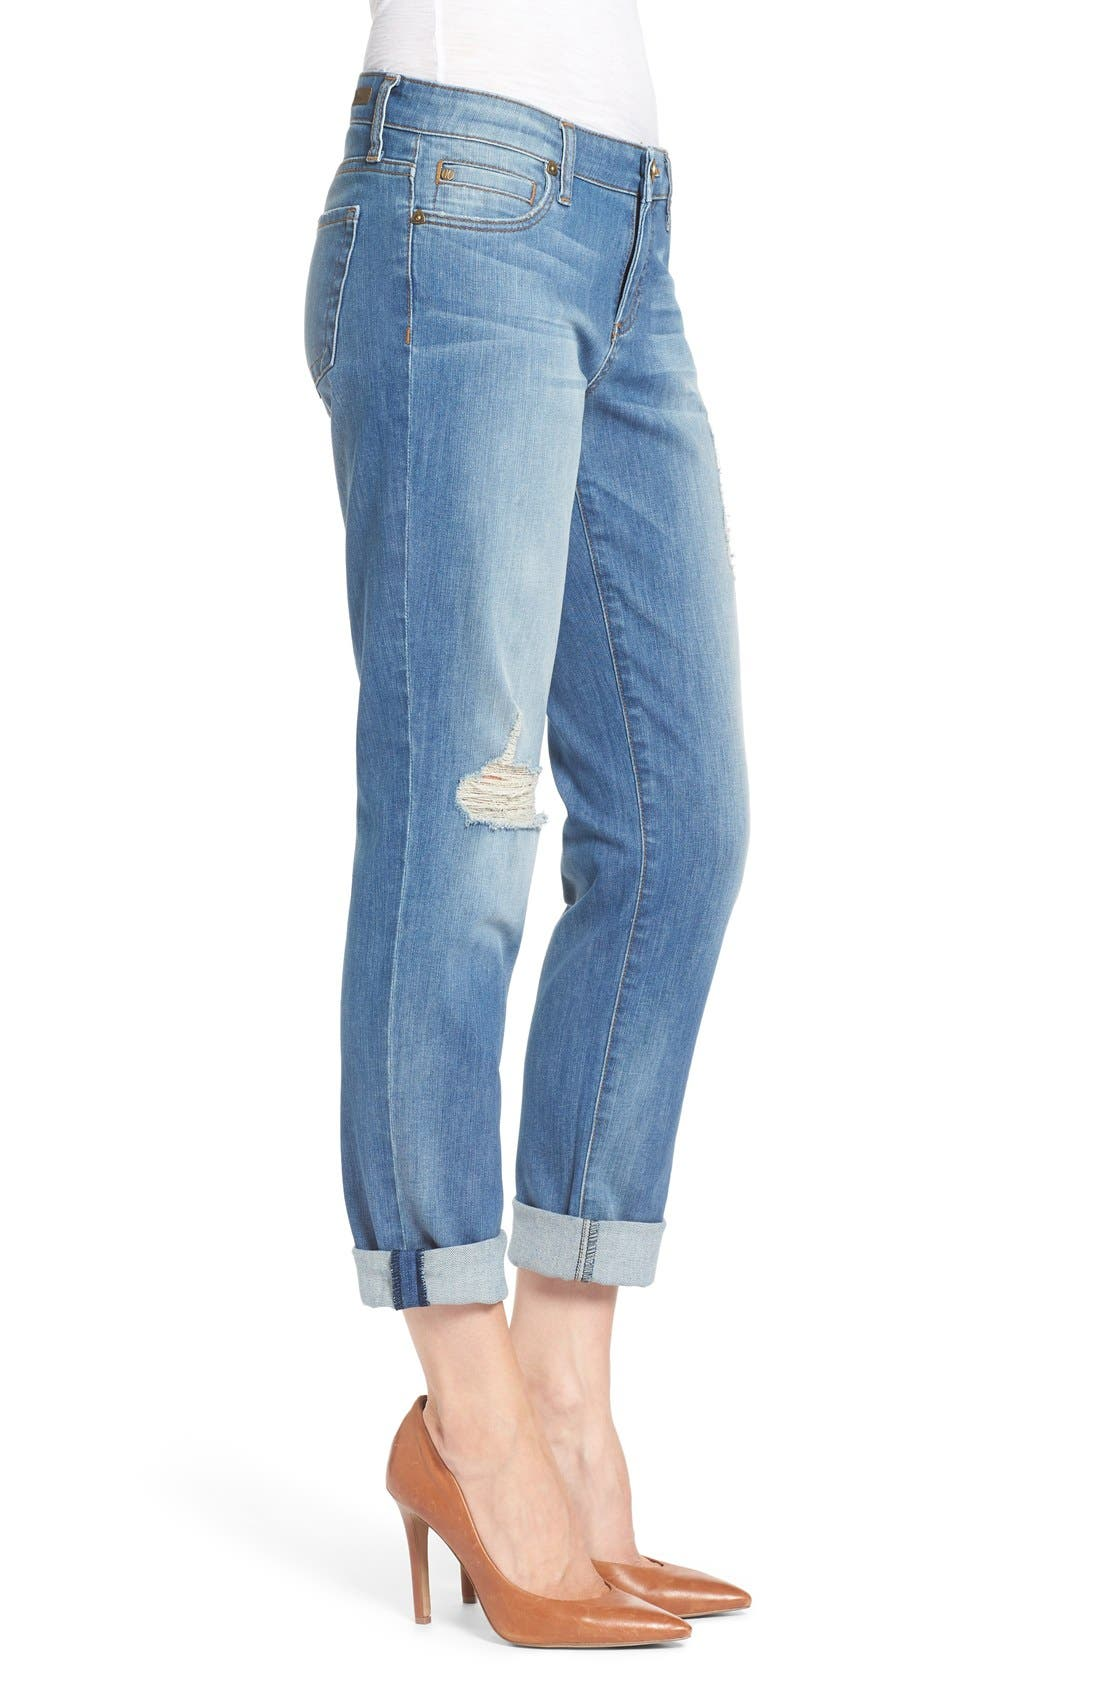 Alternate Image 3  - KUT from the Kloth 'Catherine' Distressed Stretch Boyfriend Jeans (Smile)